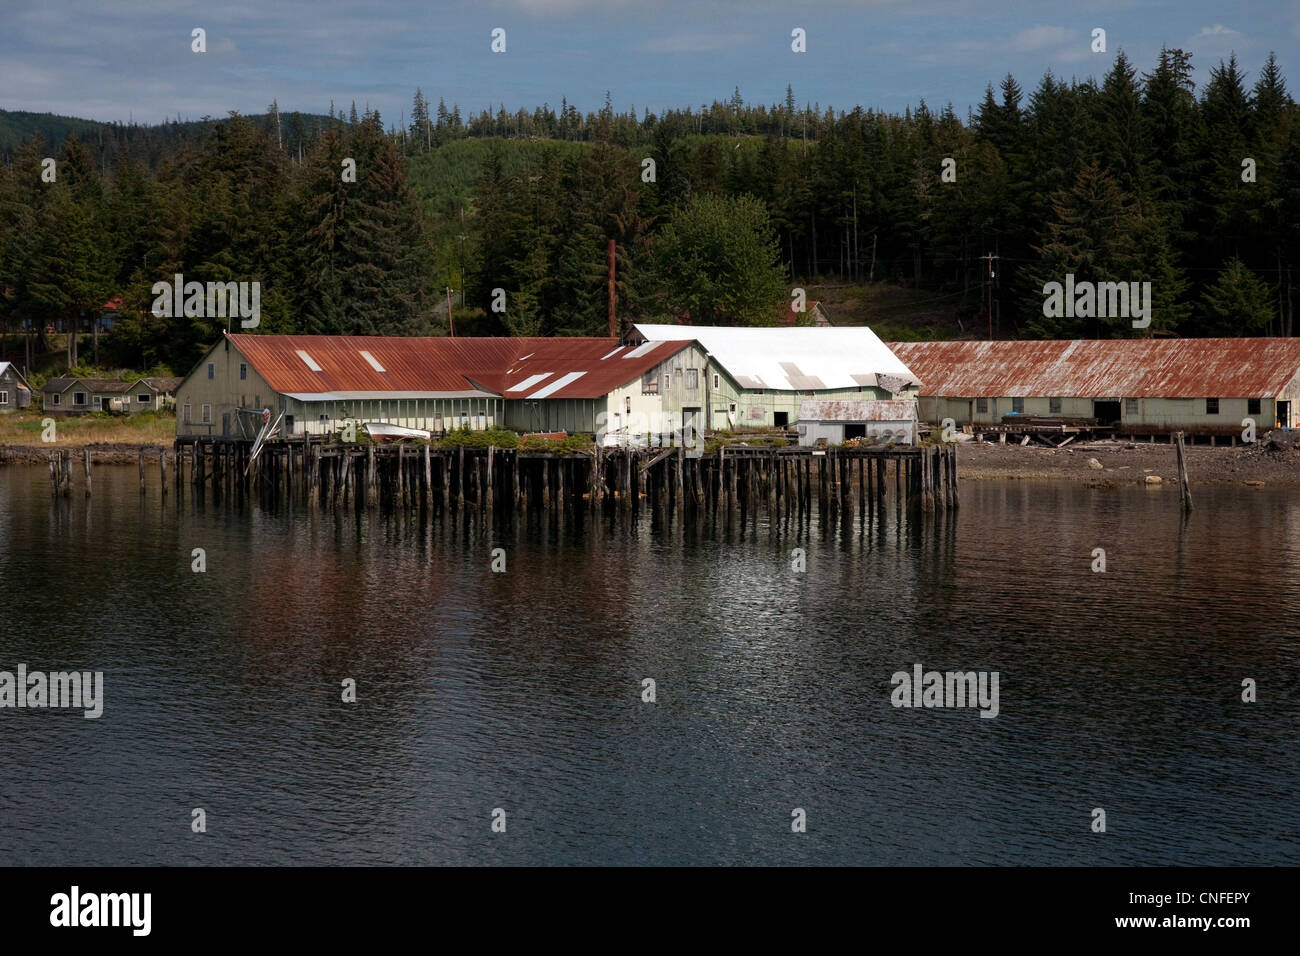 Old buildings on pilings along the inside passage near Kake, Alaska, USA - Stock Image